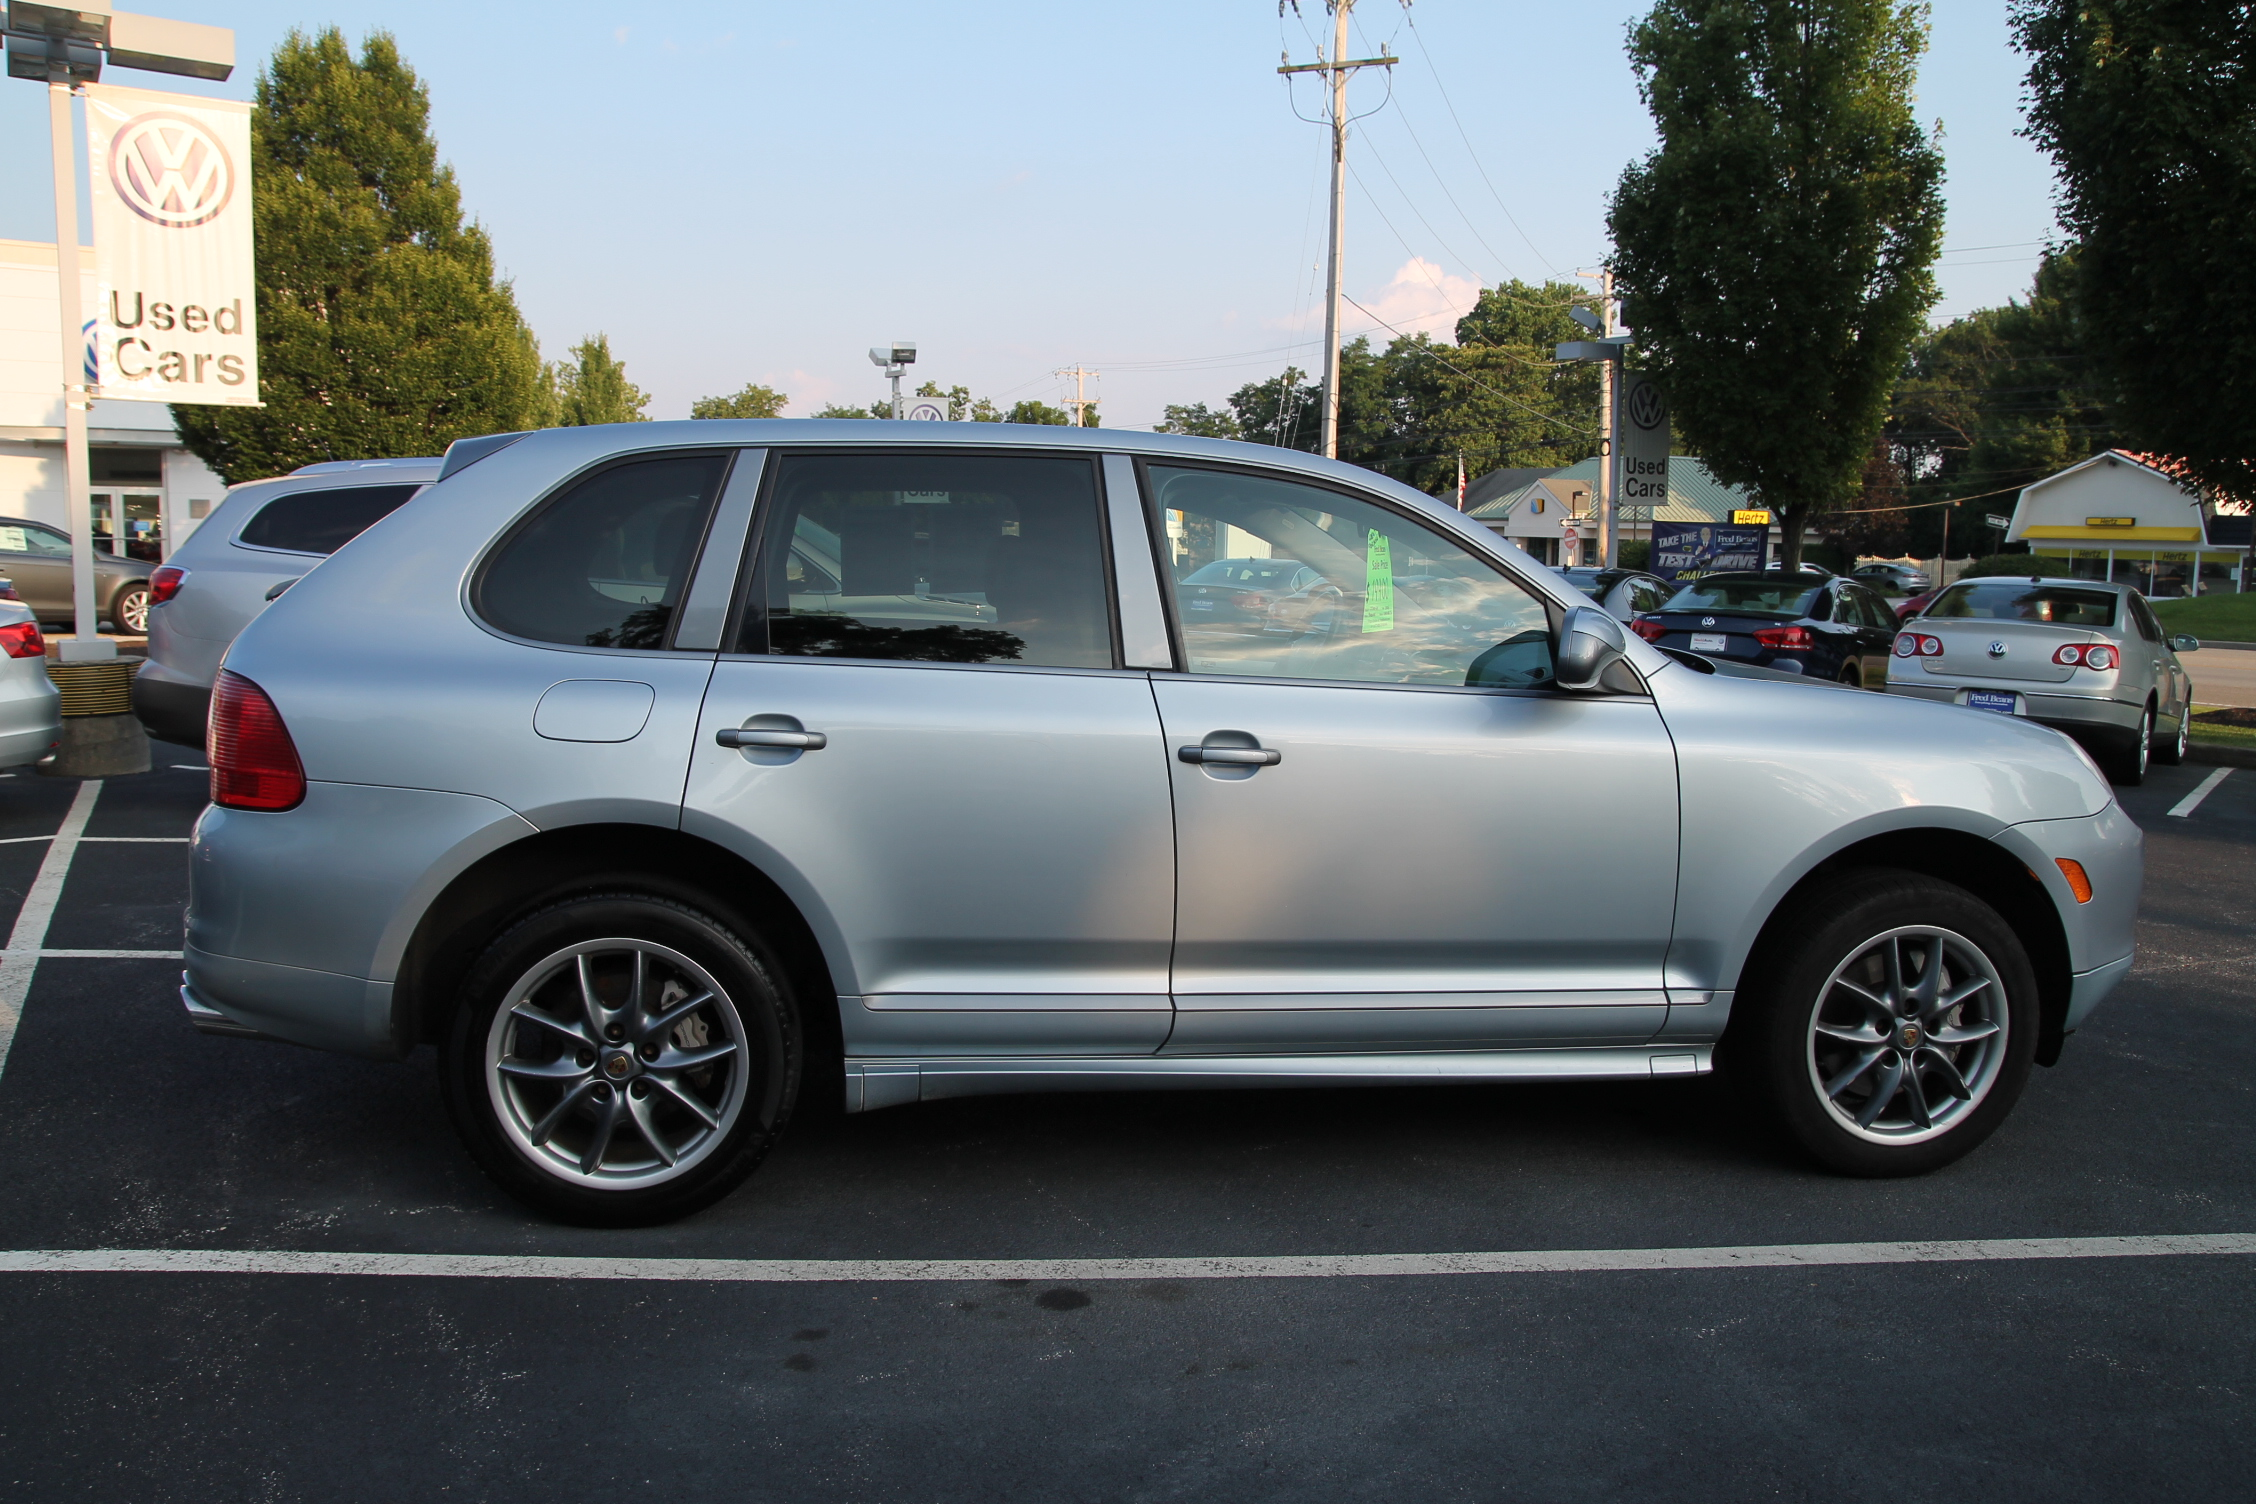 Used Porsche Cayenne devon pa Transmission Automatic  free image upload